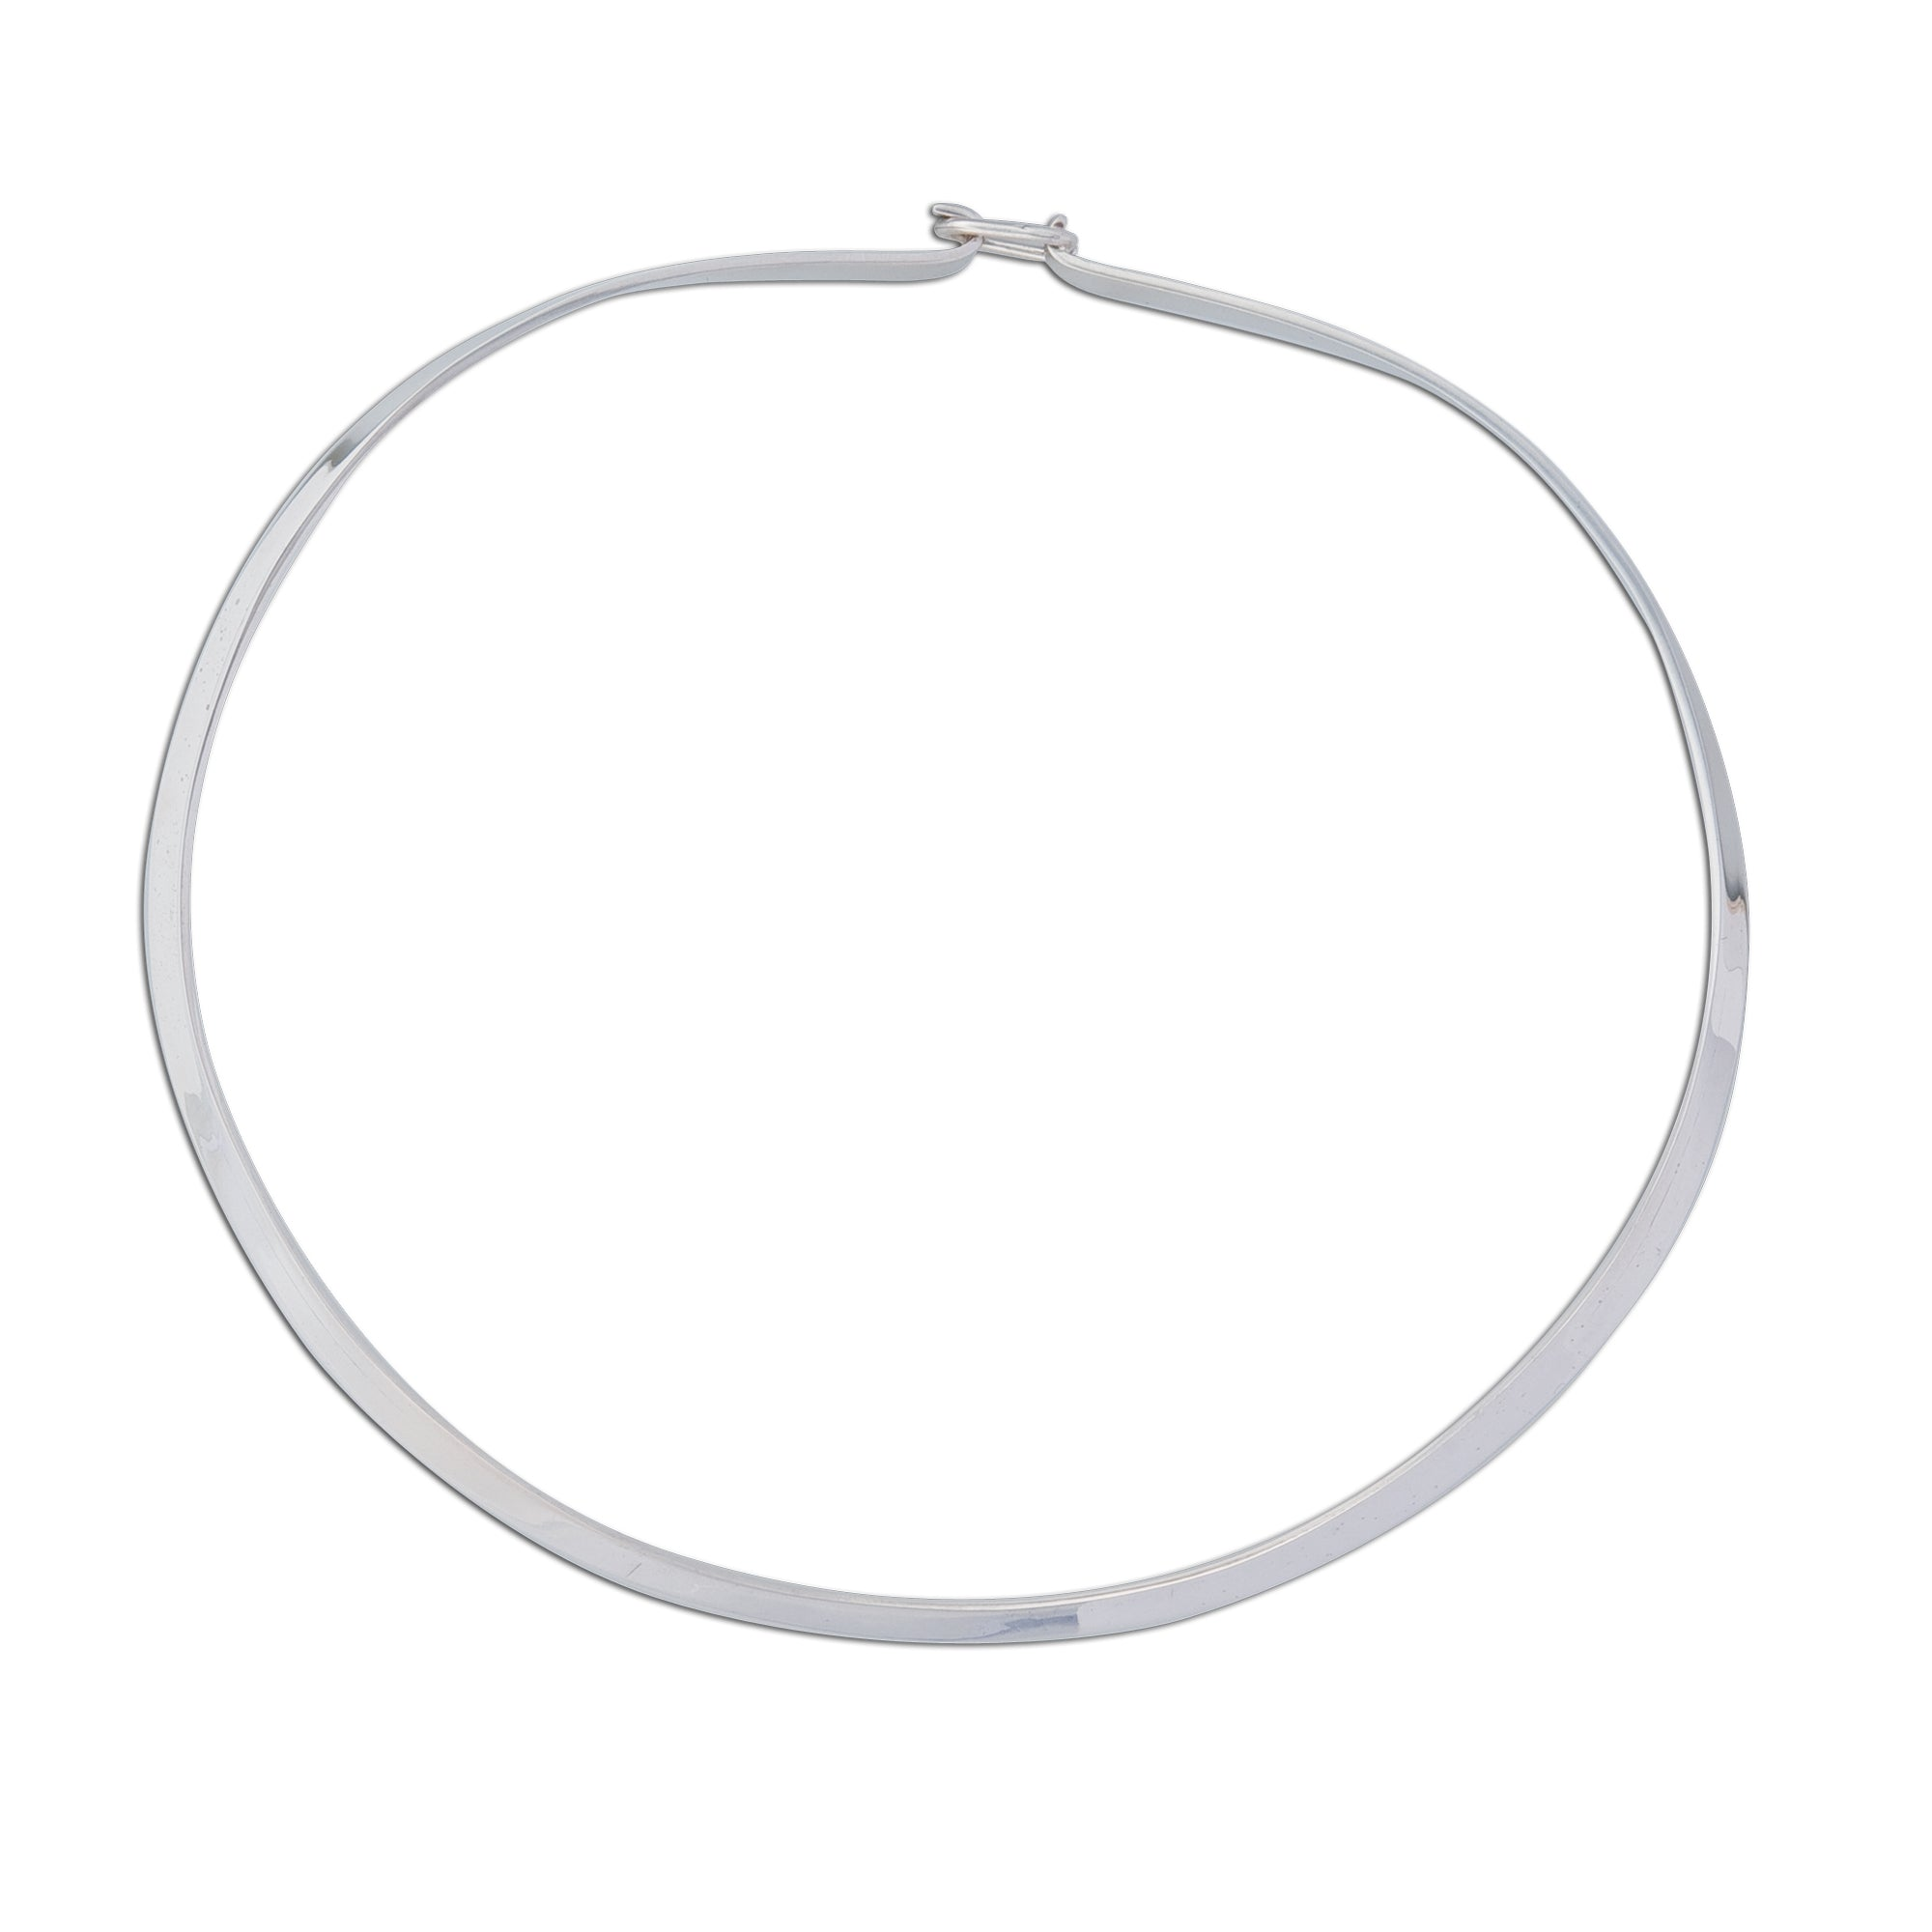 Sterling Silver Thicker Round Neckwire with Clasp | Charles Albert Jewelry